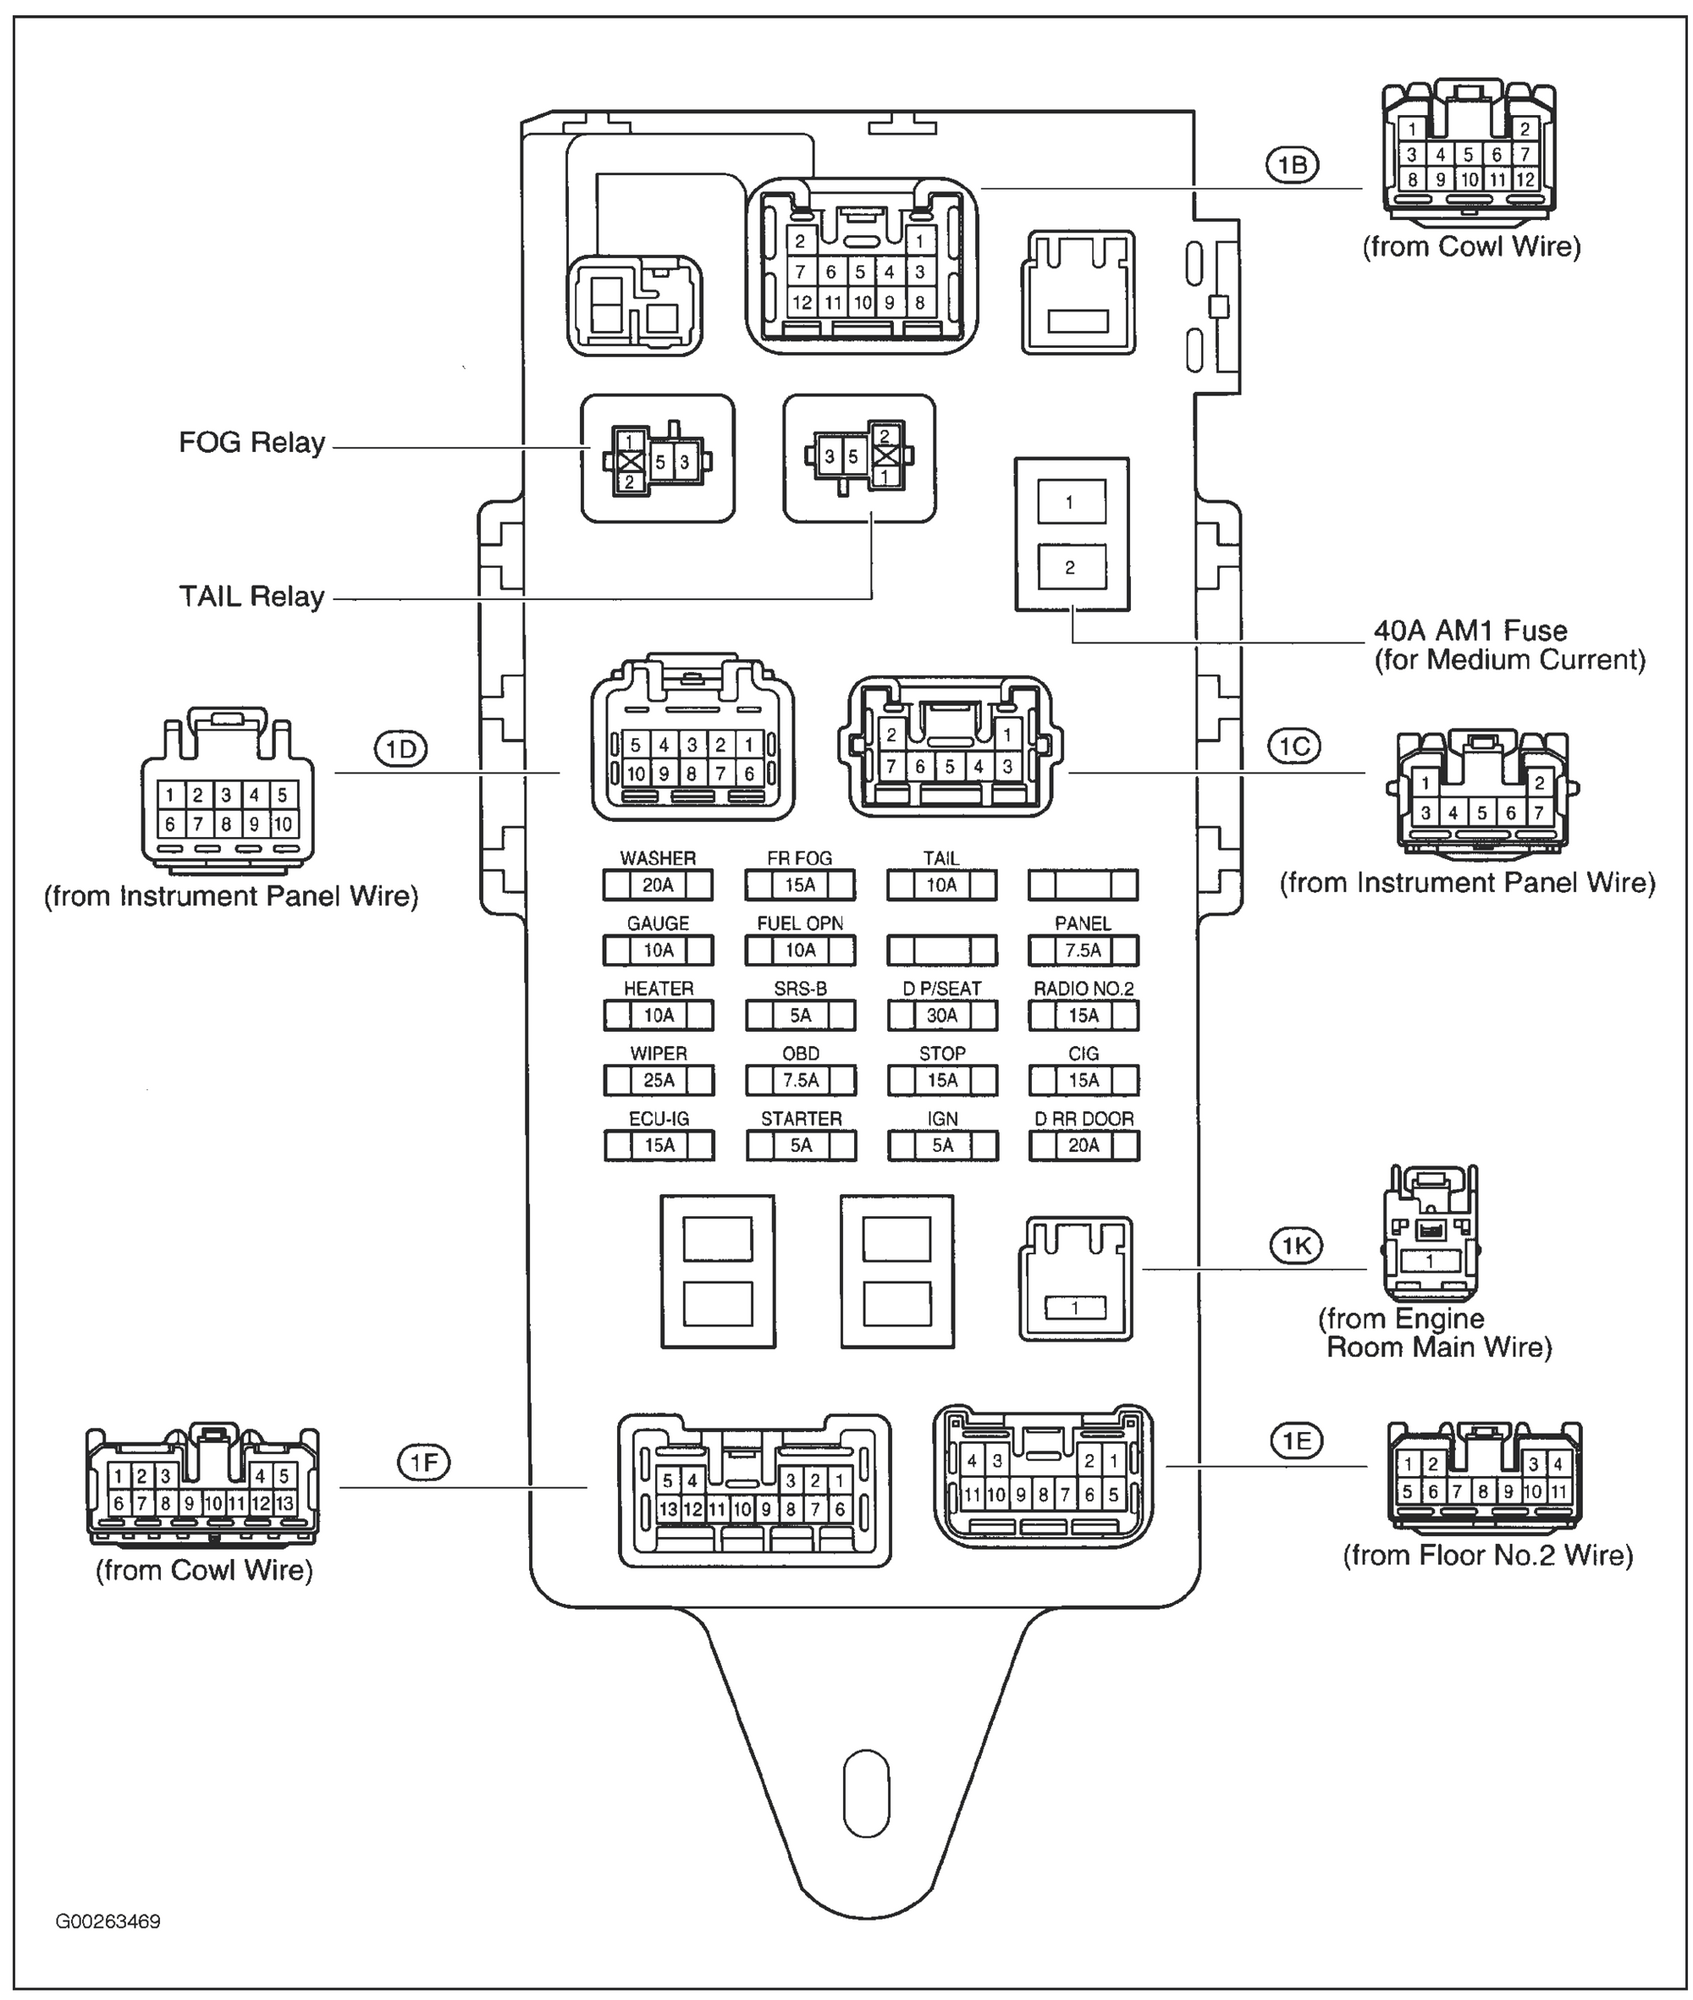 1996 lexu es300 fuse box diagram